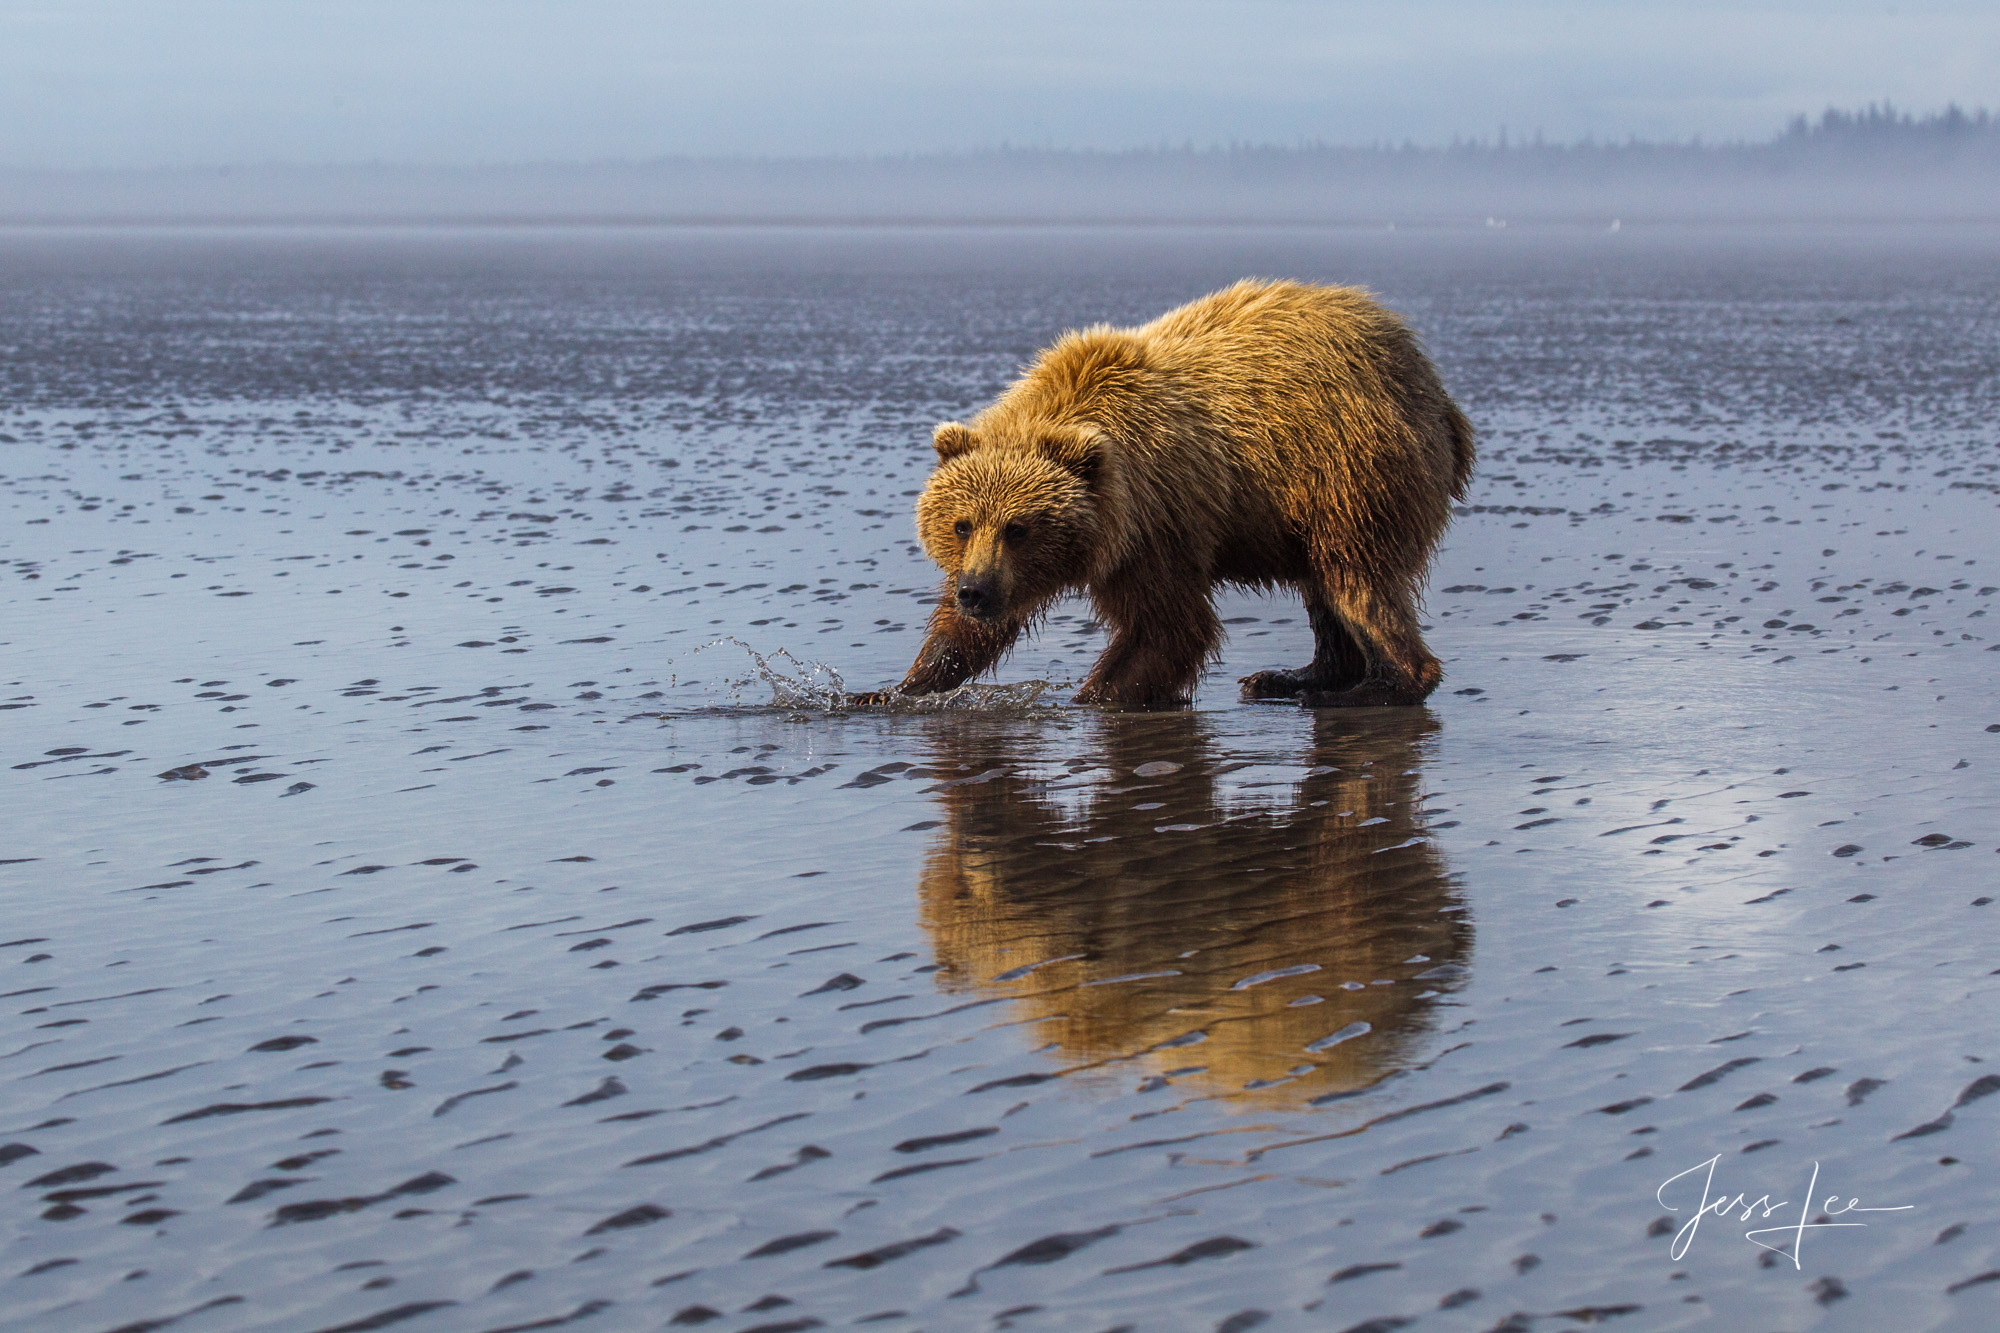 Alaska Grizzly Clamming at Lake Clark, Limited edition of 800 prints. These Grizzly bear fine art wildlife photographs are offered...